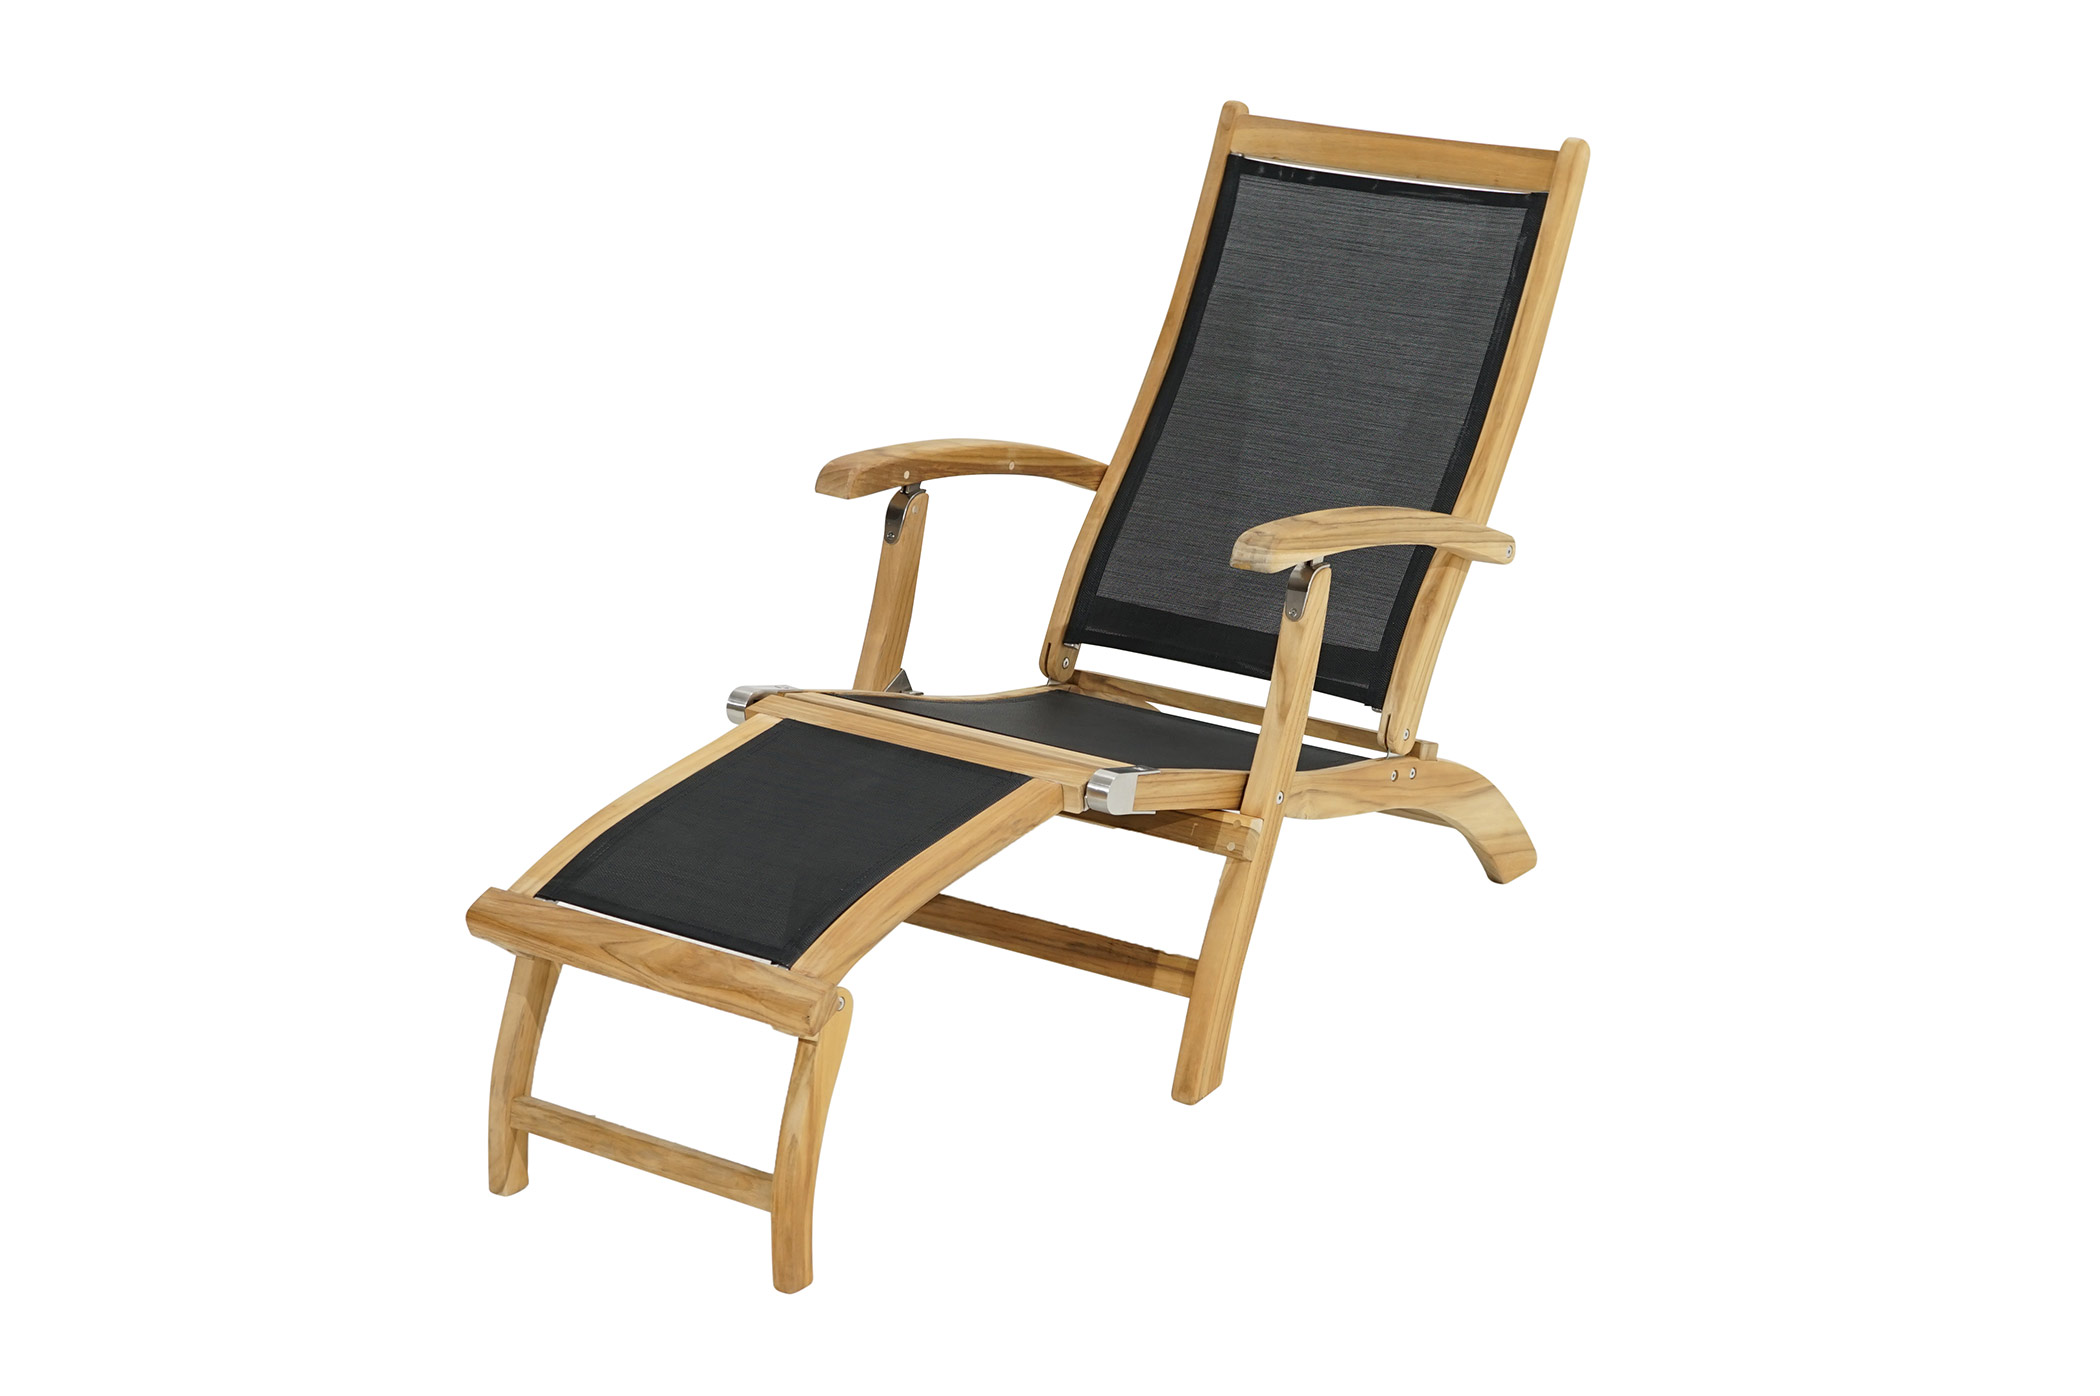 deckchair fairchild teak textilene deckchairs. Black Bedroom Furniture Sets. Home Design Ideas